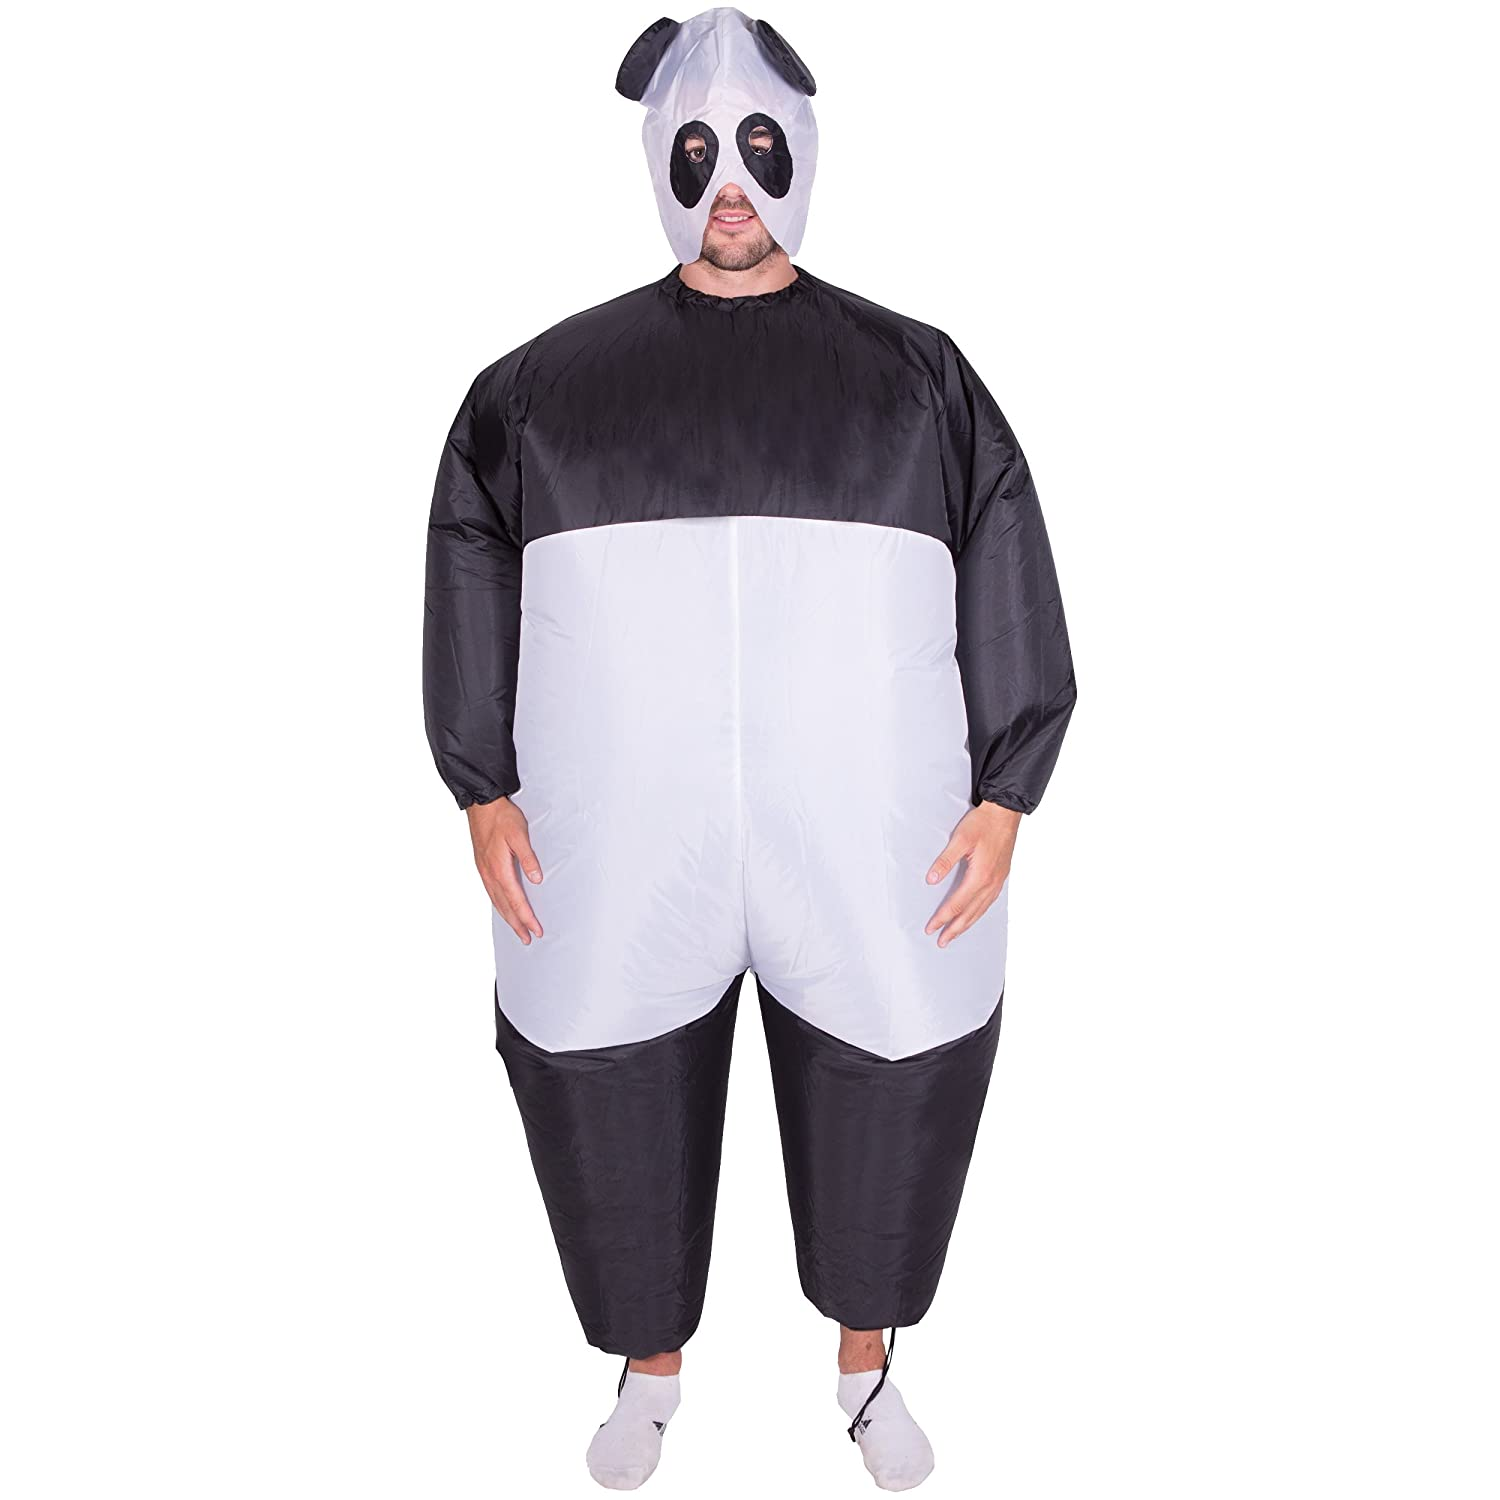 Bodysocks Inflatable Ride Me Adult Carry On Animal Fancy Dress Costume